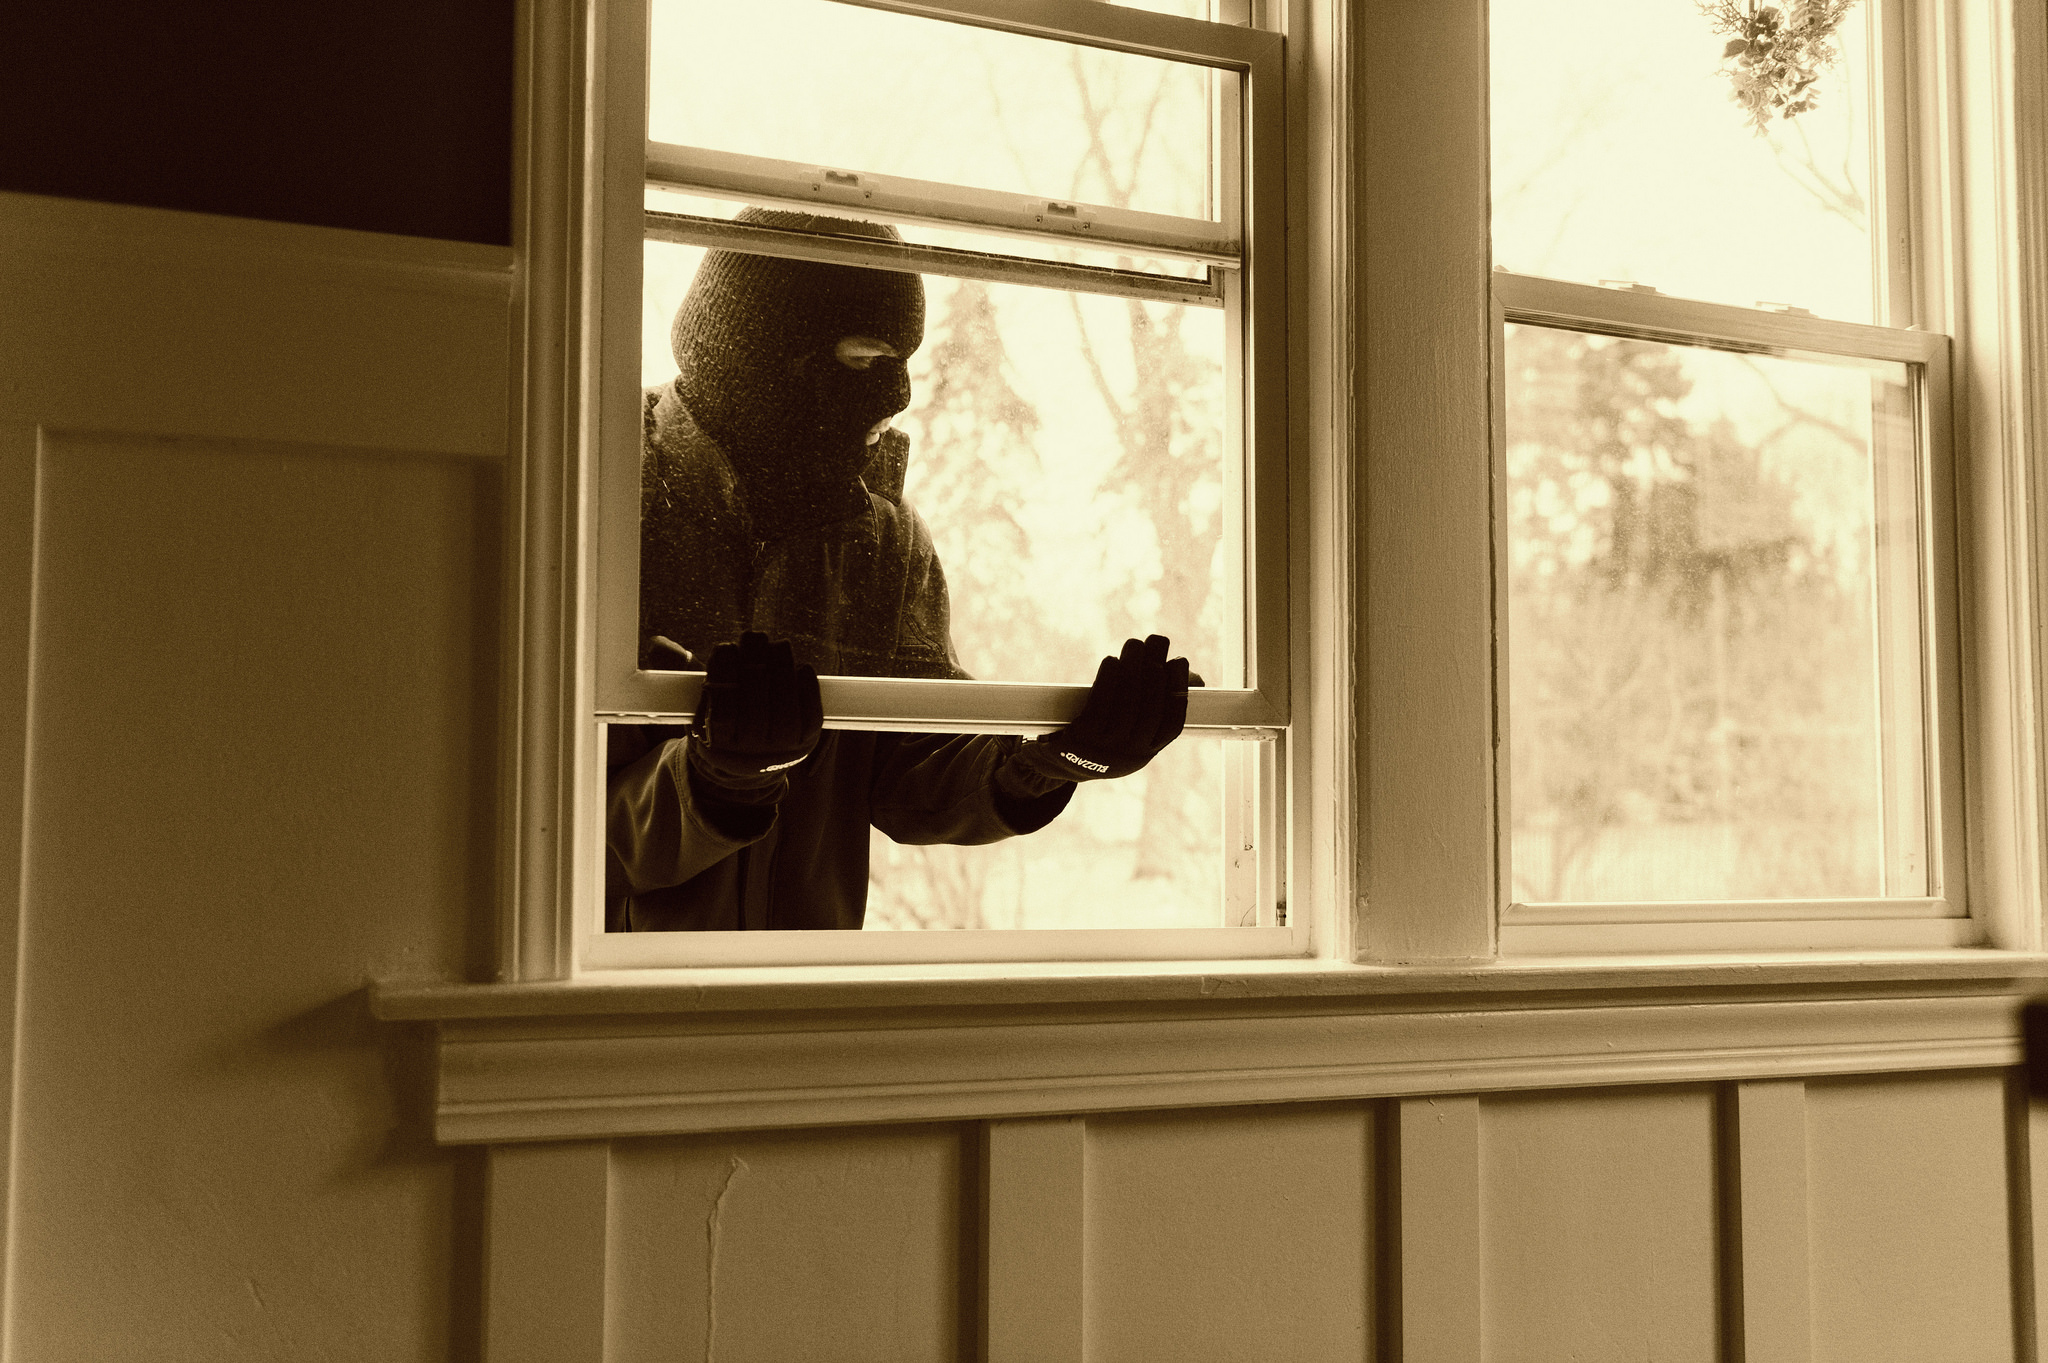 masked man opening the window of the house